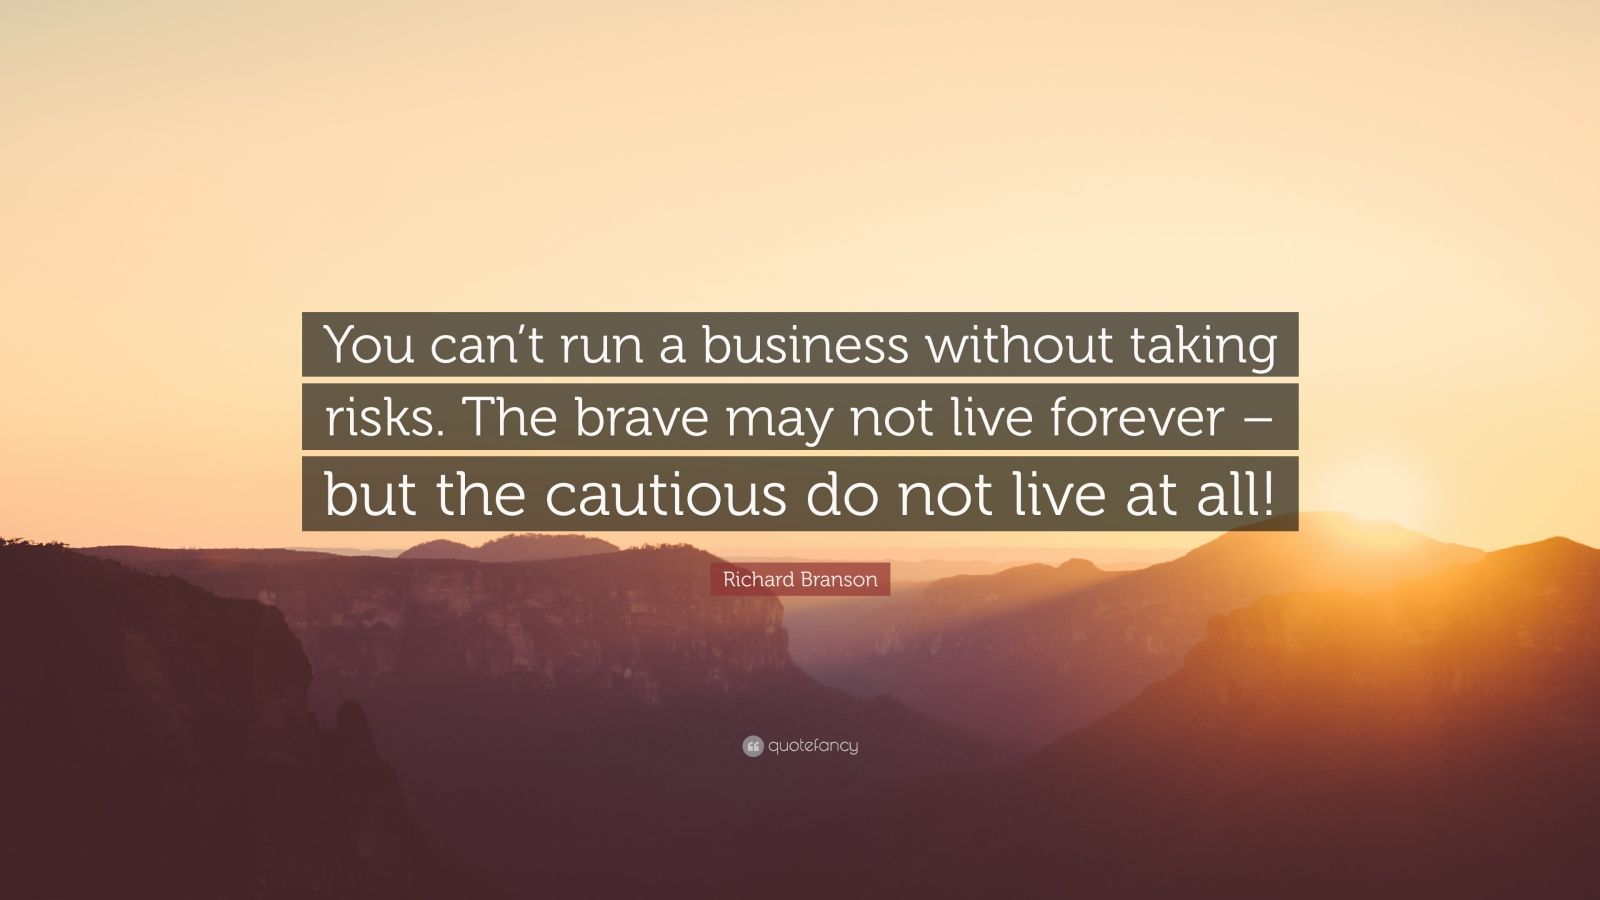 """Richard Branson Quote: """"You can't run a business without taking risks. The brave may not live forever – but the cautious do not live at all!"""""""